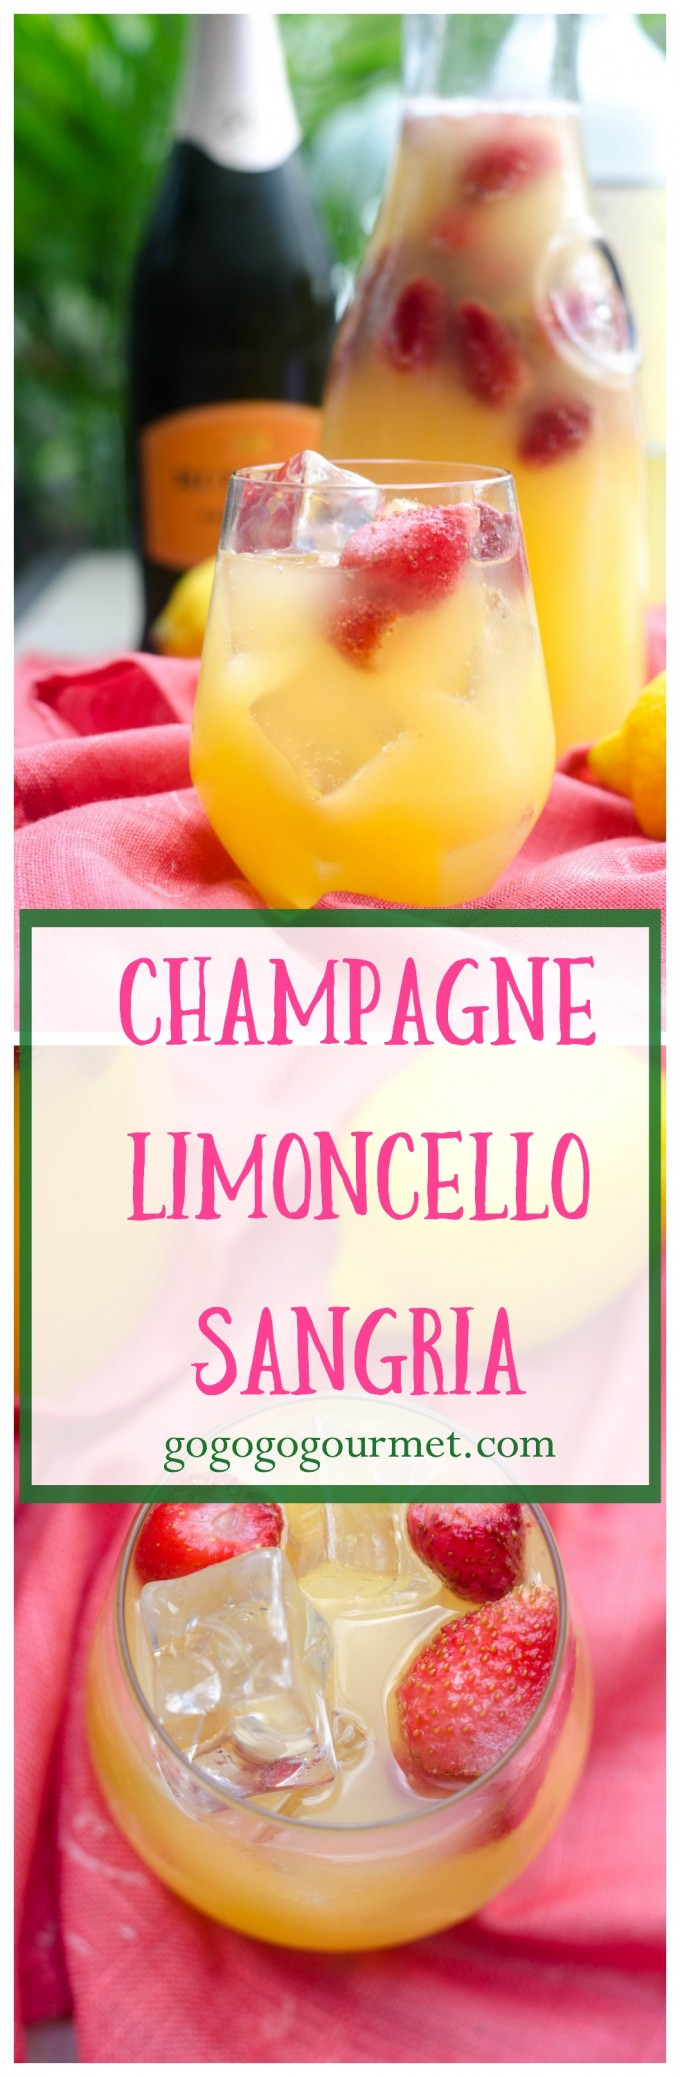 We're running out of summer, so make this fabulous summer refresher- Champagne Limoncello Sangria! | Go Go Go Gourmet @Go Go Go Gourmet via @gogogogourmet